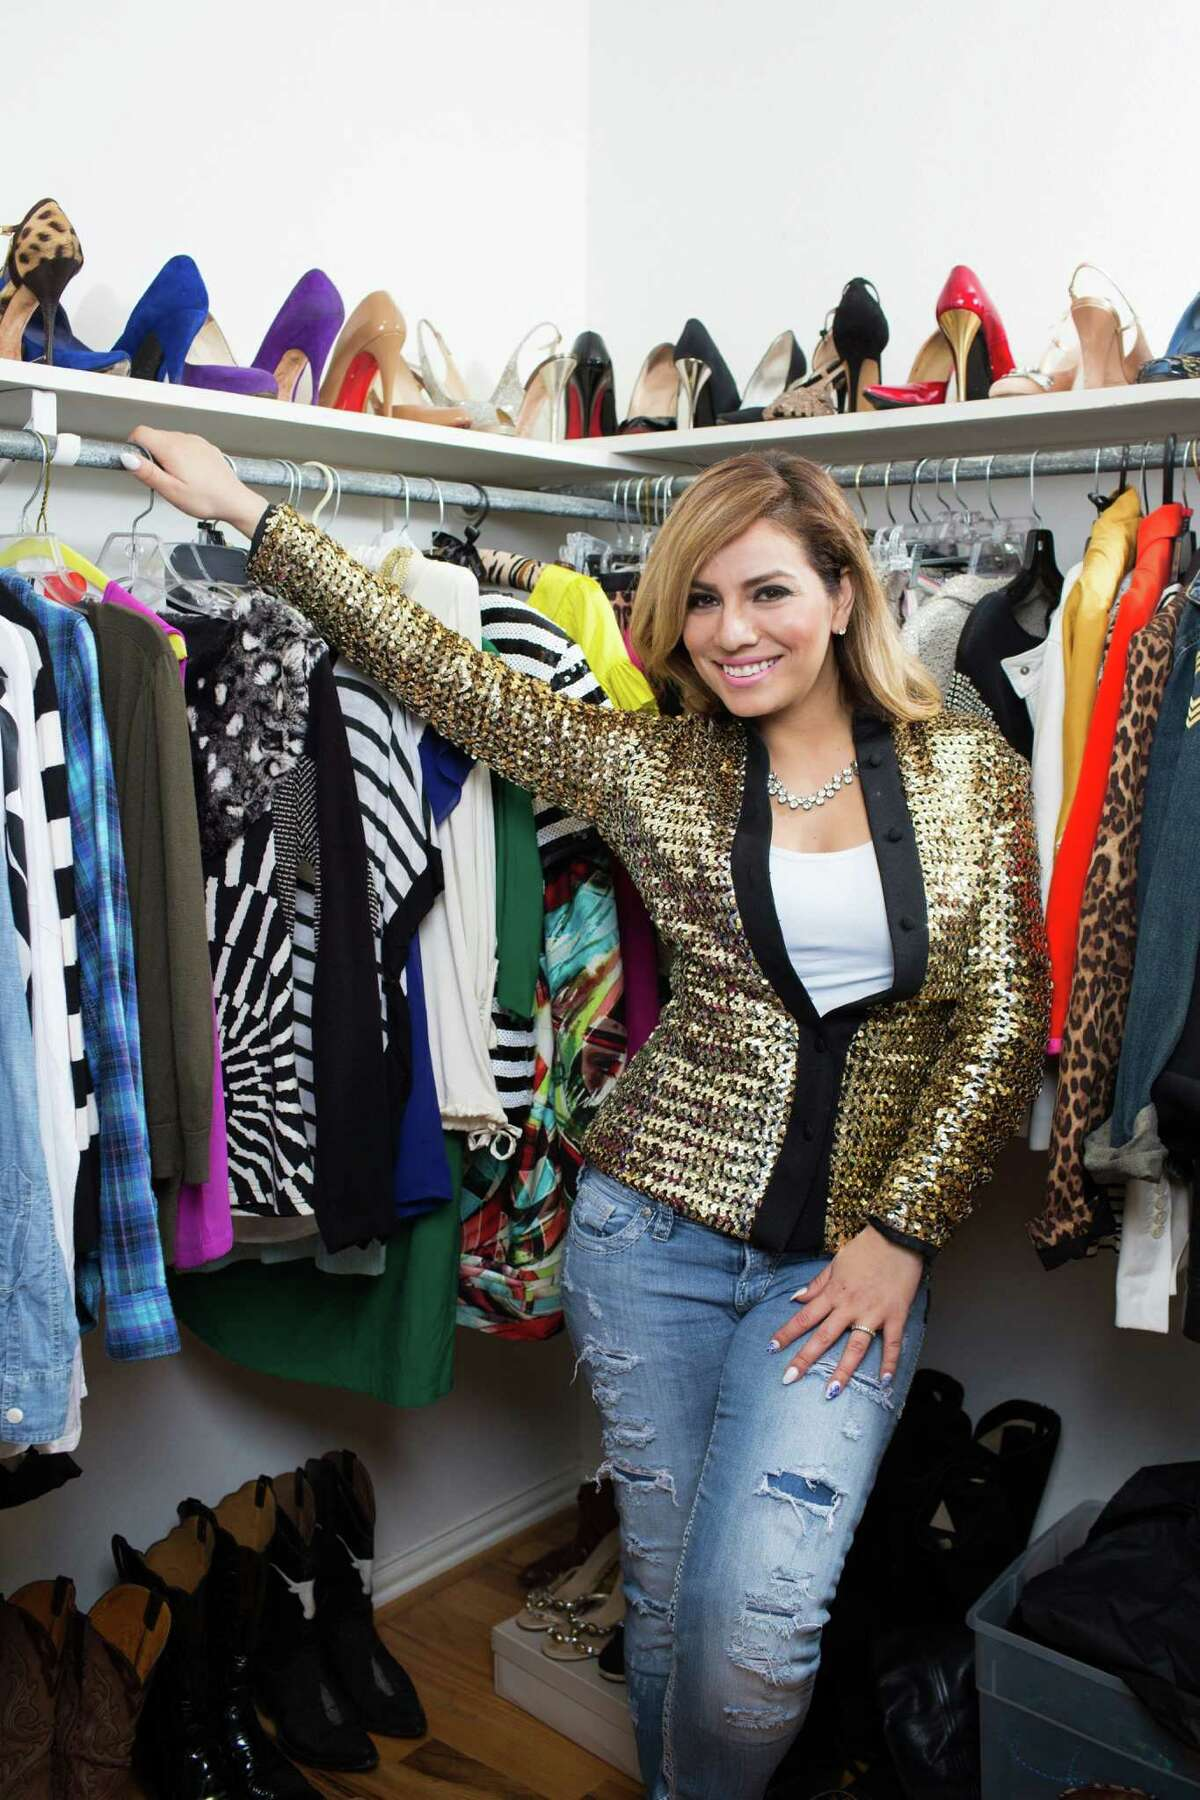 Yvonne Guidry started her hugely popular Spoiled Latina blog in 2008.